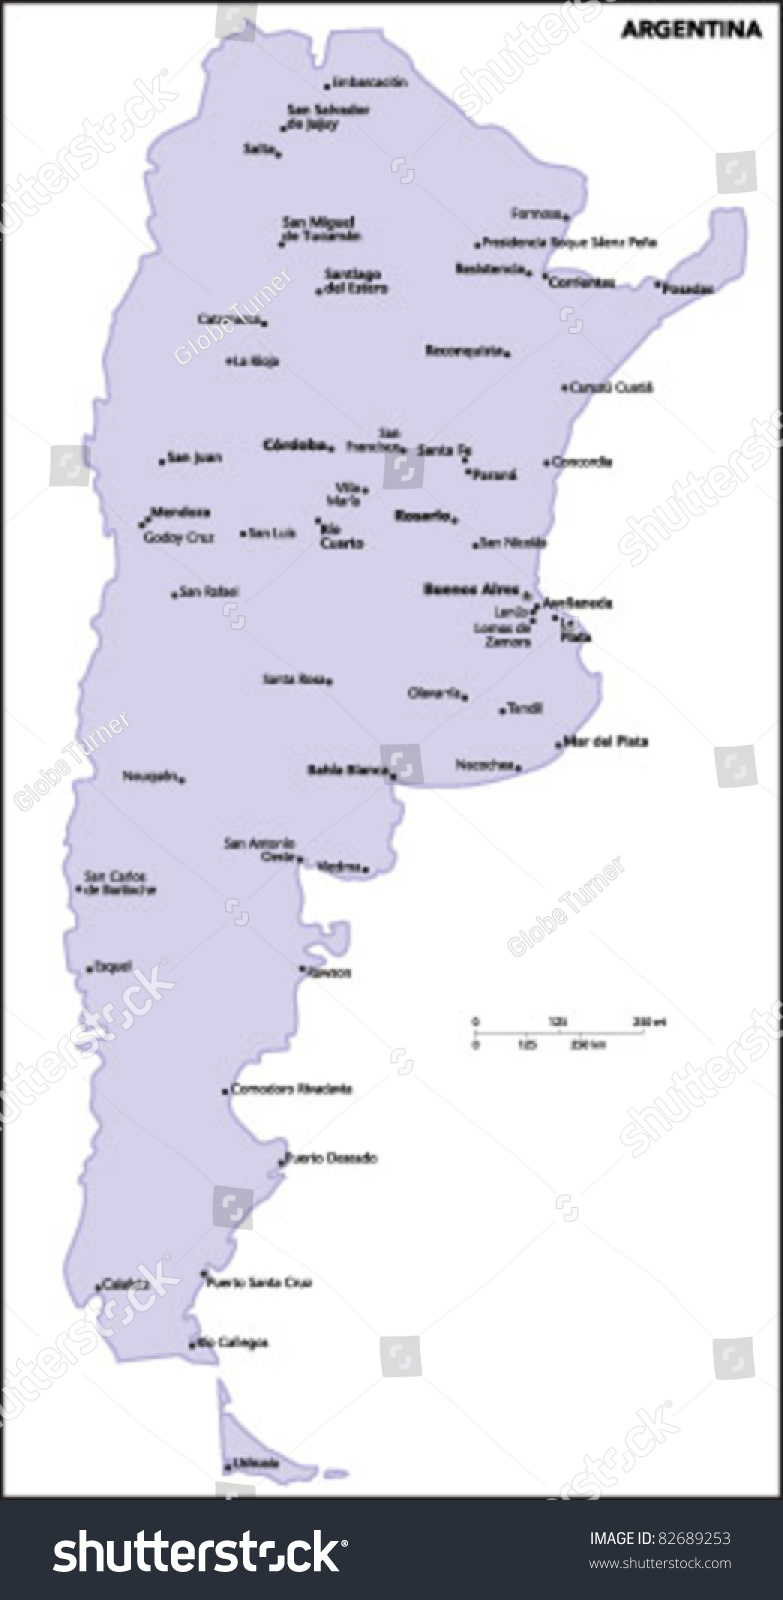 Argentina Country Political Map Including Silicon Valley Map - Argentina map of country